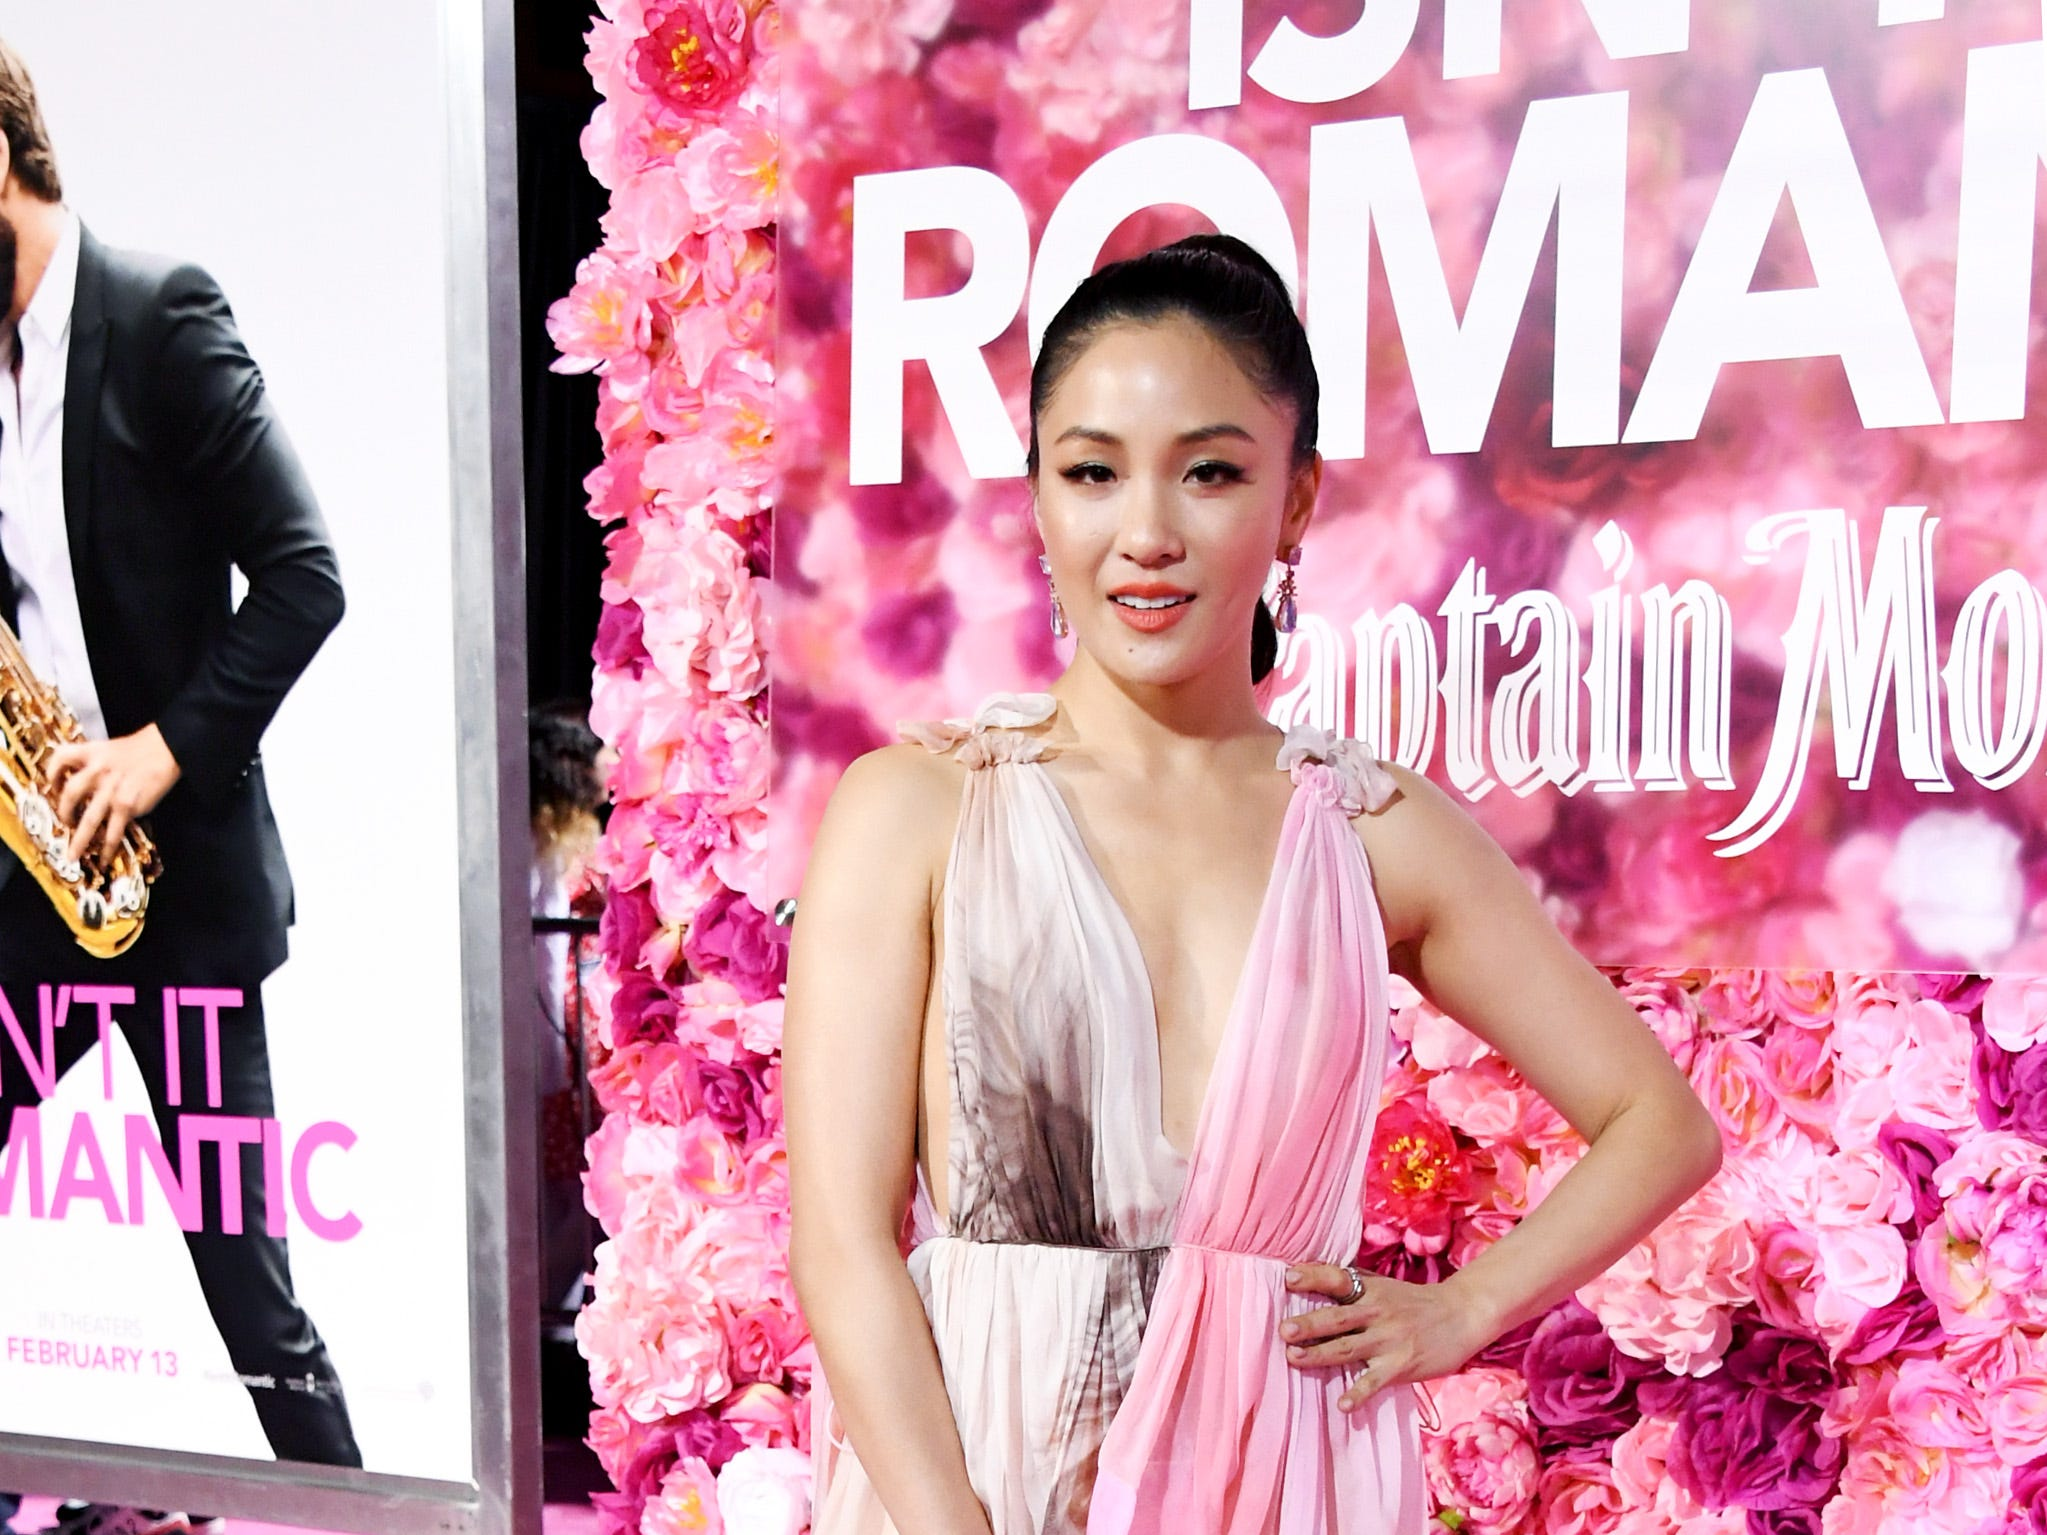 "LOS ANGELES, CALIFORNIA - FEBRUARY 11: Constance Wu attends the premiere of Warner Bros. Pictures' ""Isn't It Romantic"" at The Theatre at Ace Hotel on February 11, 2019 in Los Angeles, California. (Photo by Jon Kopaloff/FilmMagic) ORG XMIT: 775292838 ORIG FILE ID: 1129042557"